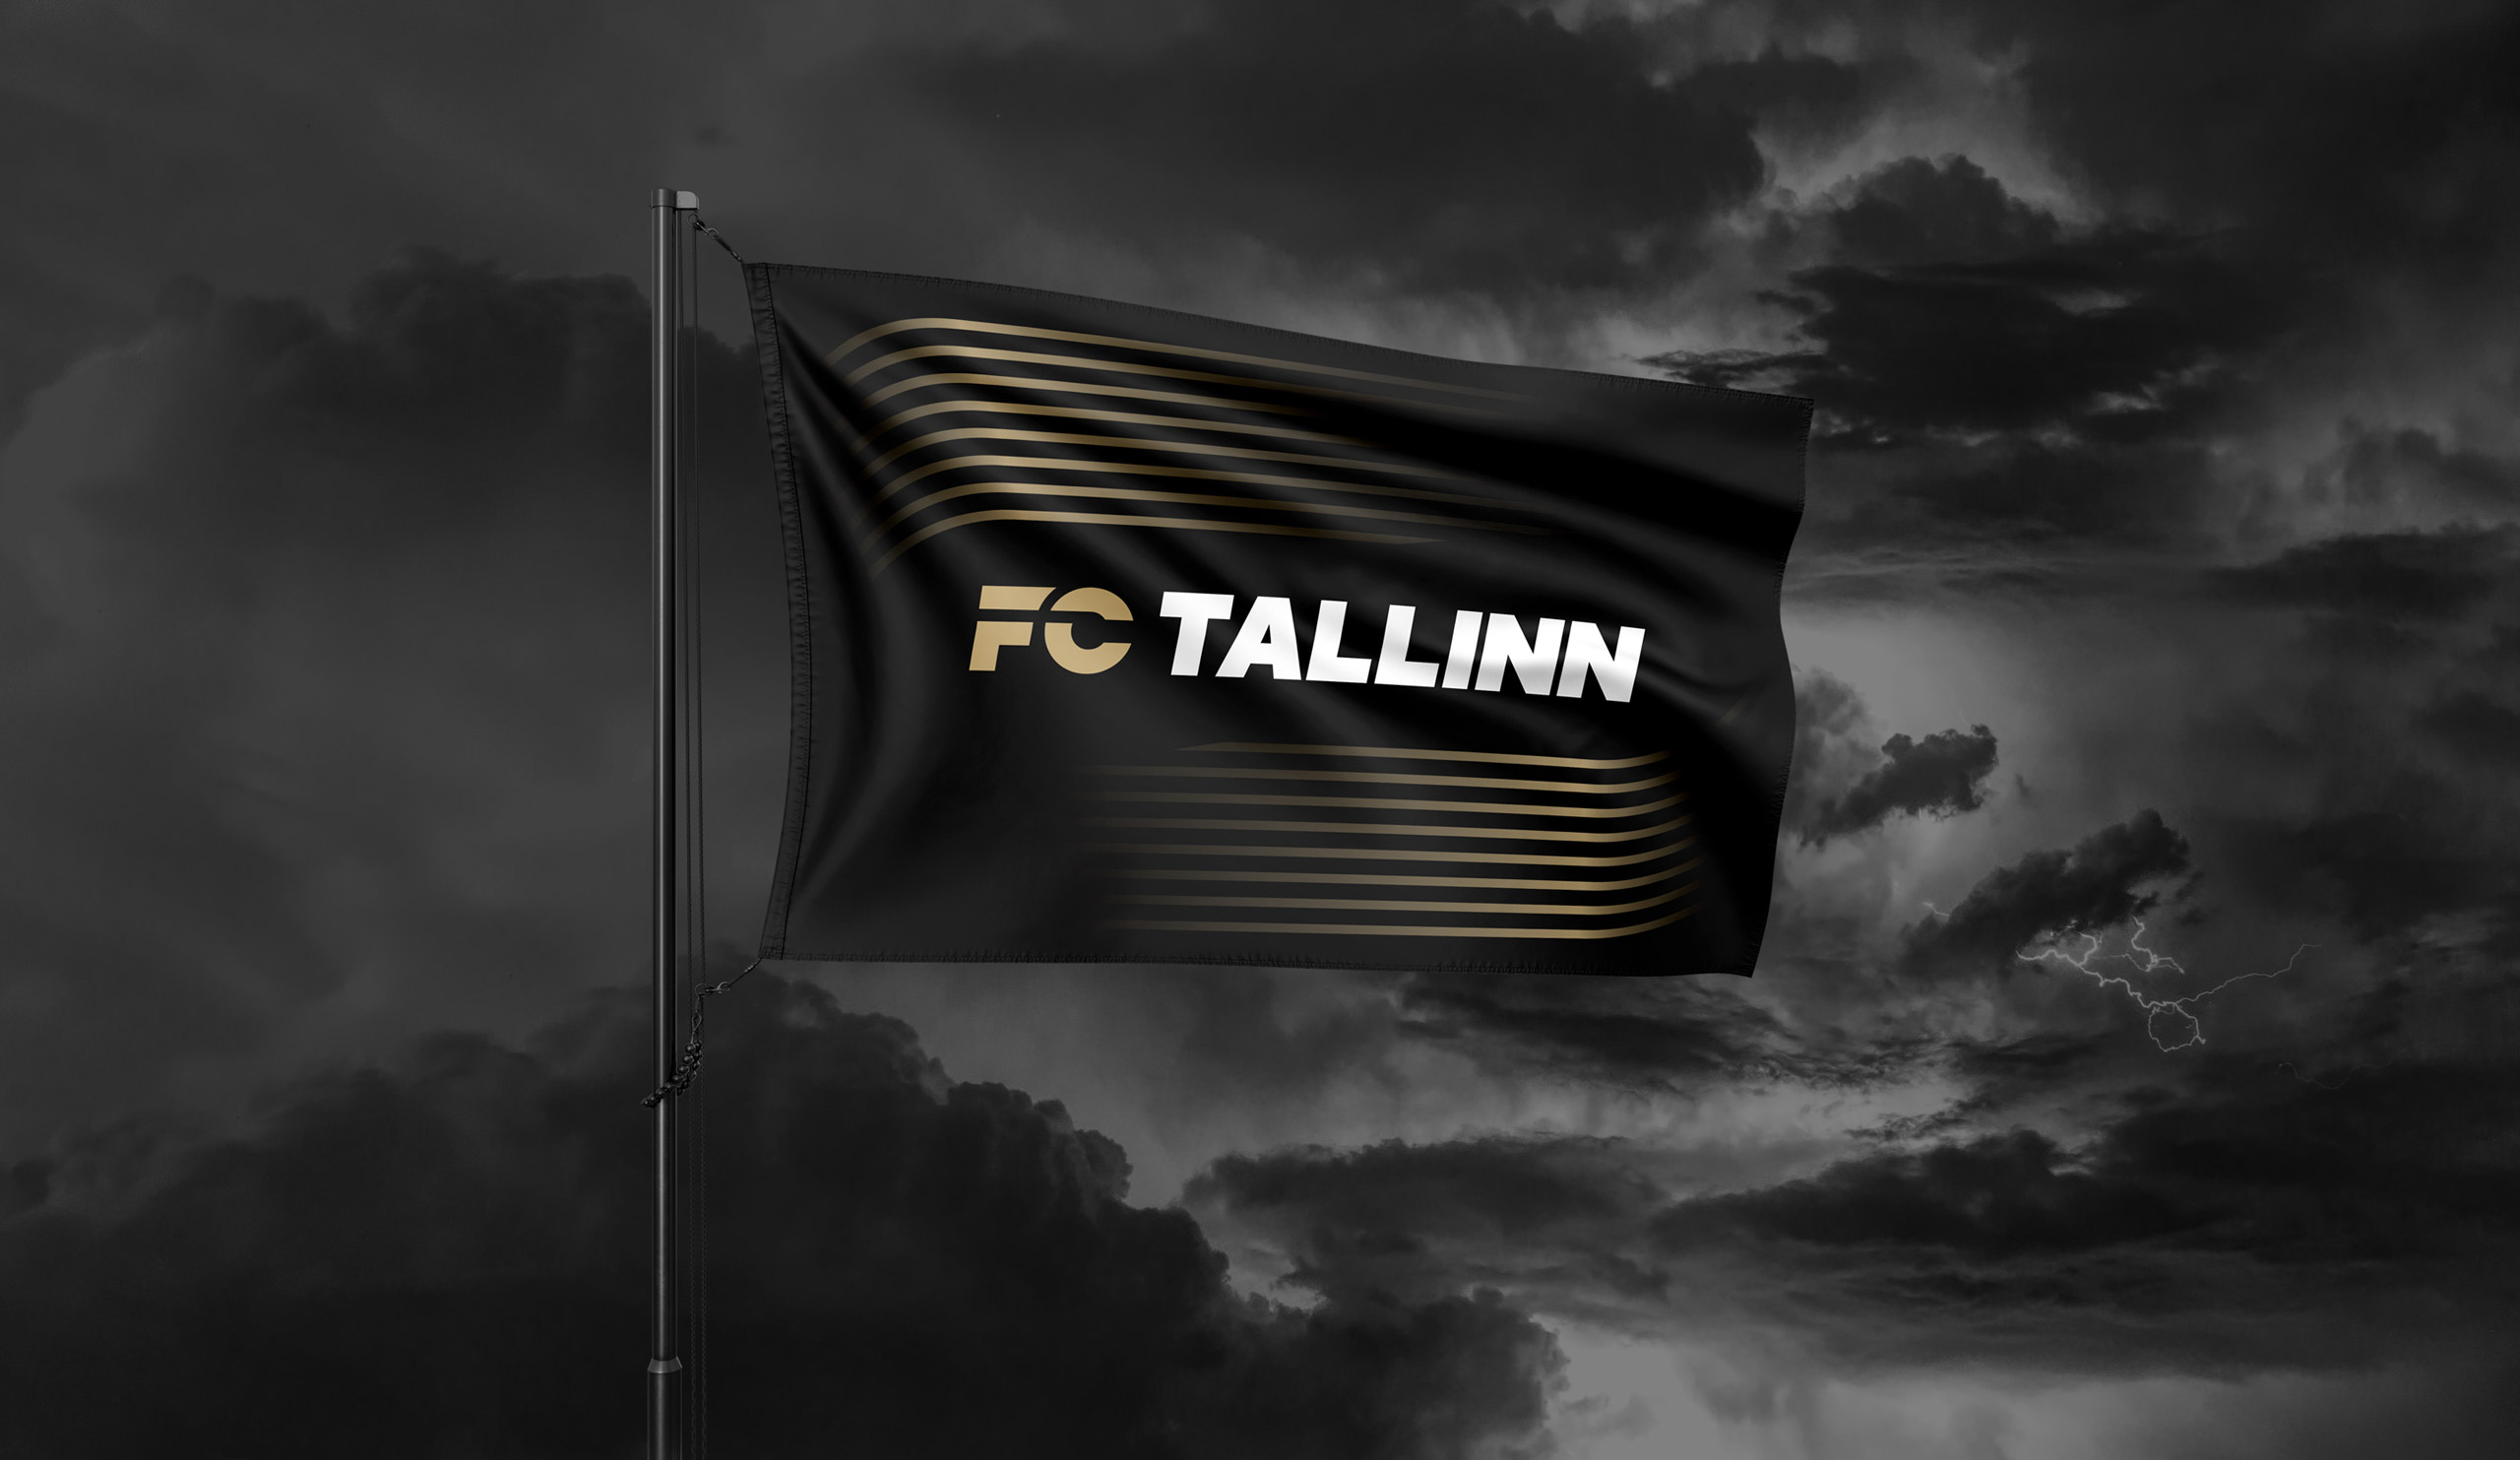 Flag Design for the Tallinn Football Club